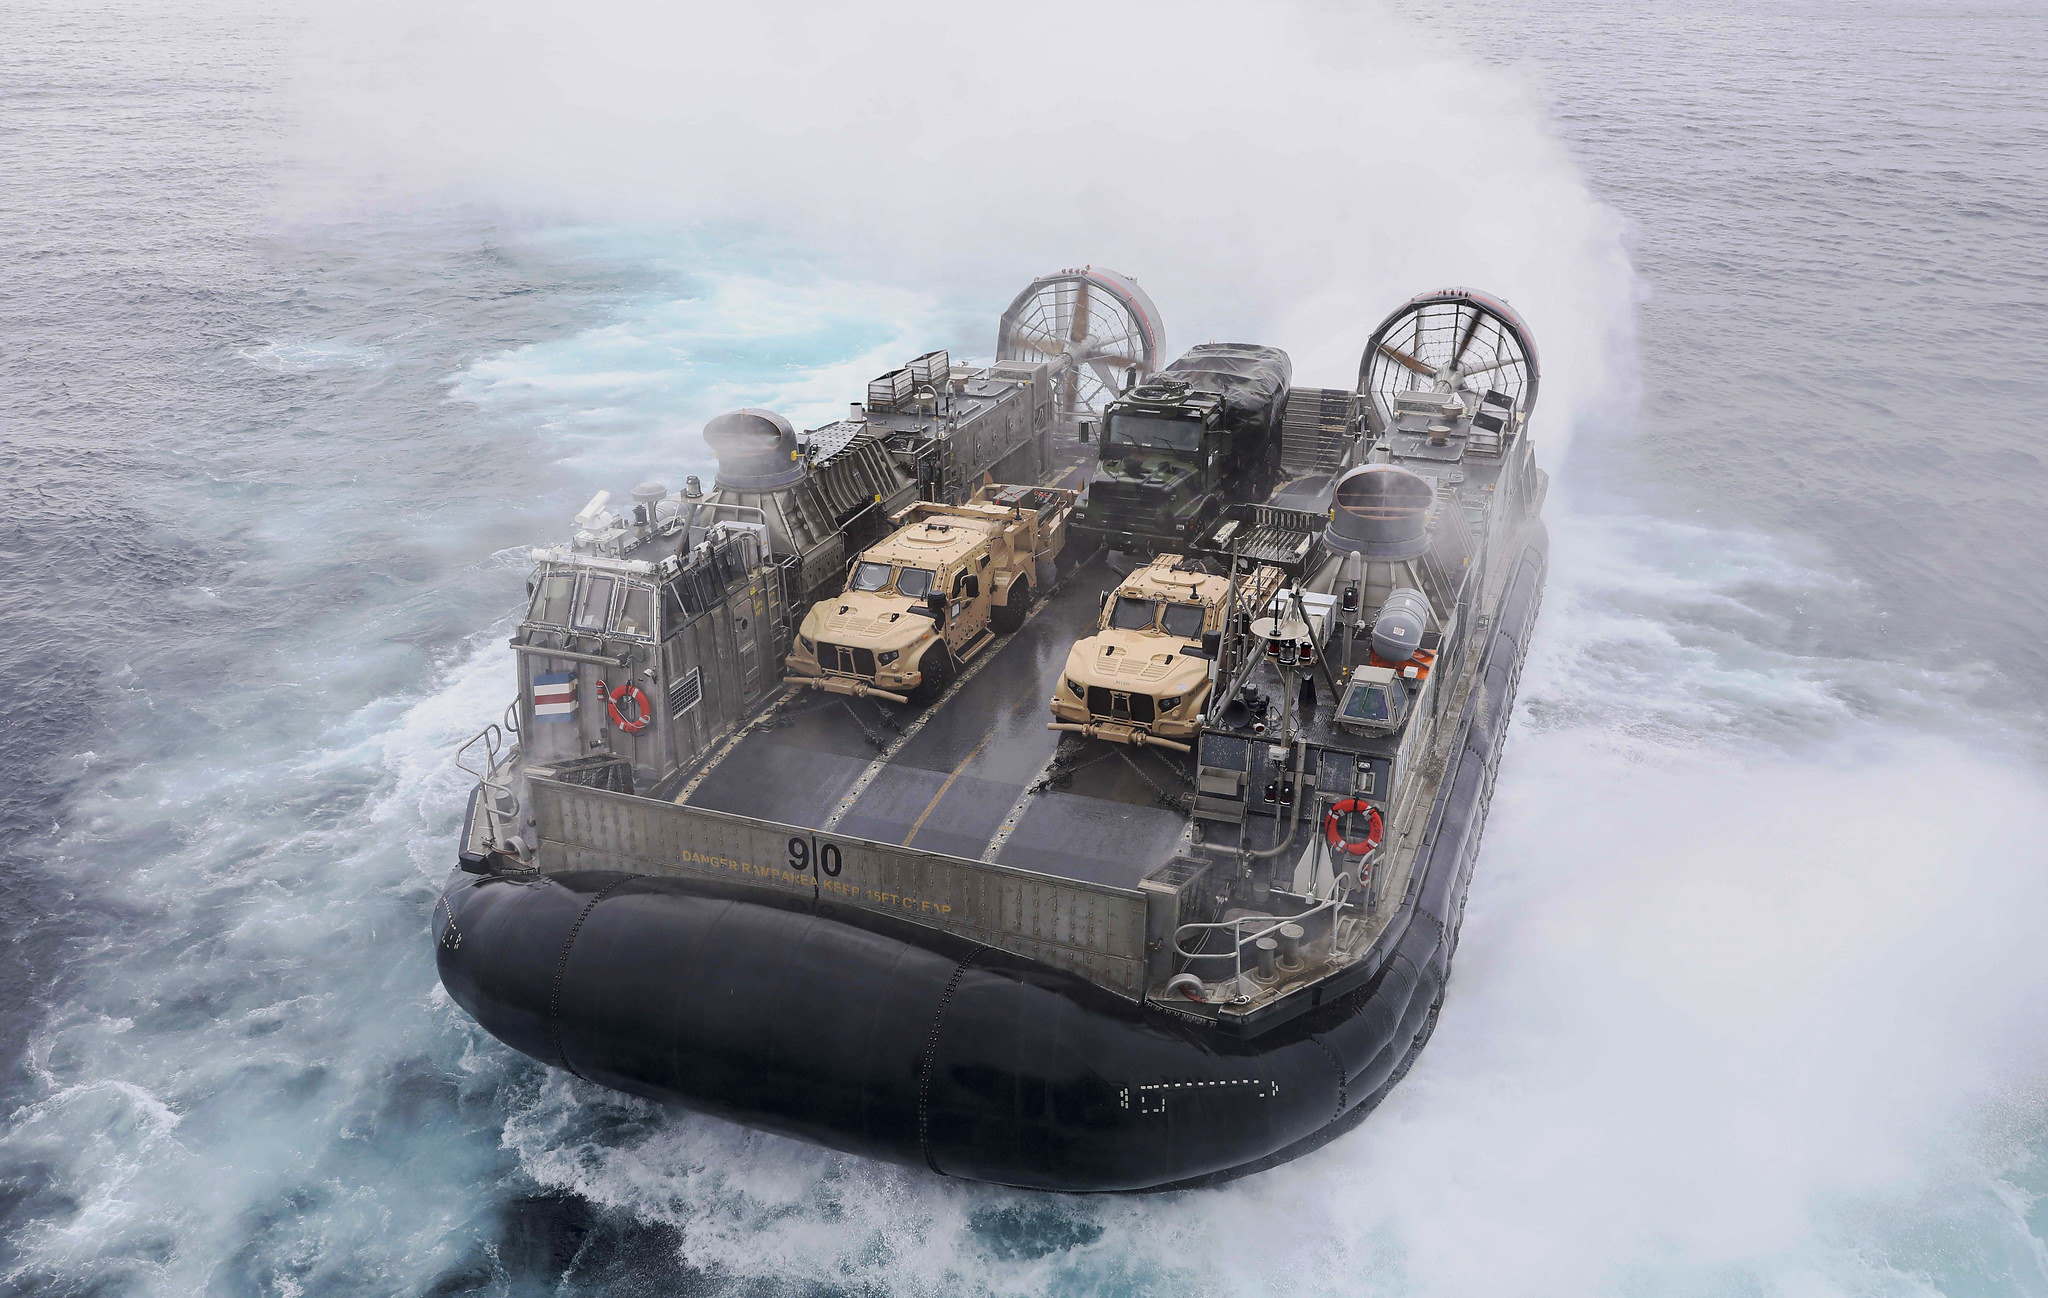 A landing craft, air cushion transits ashore Aug. 8, 2020, after departing amphibious assault ship USS Makin Island (LHD 8) in the Pacific Ocean. (MC1 Harry Andrew D. Gordon/Navy)